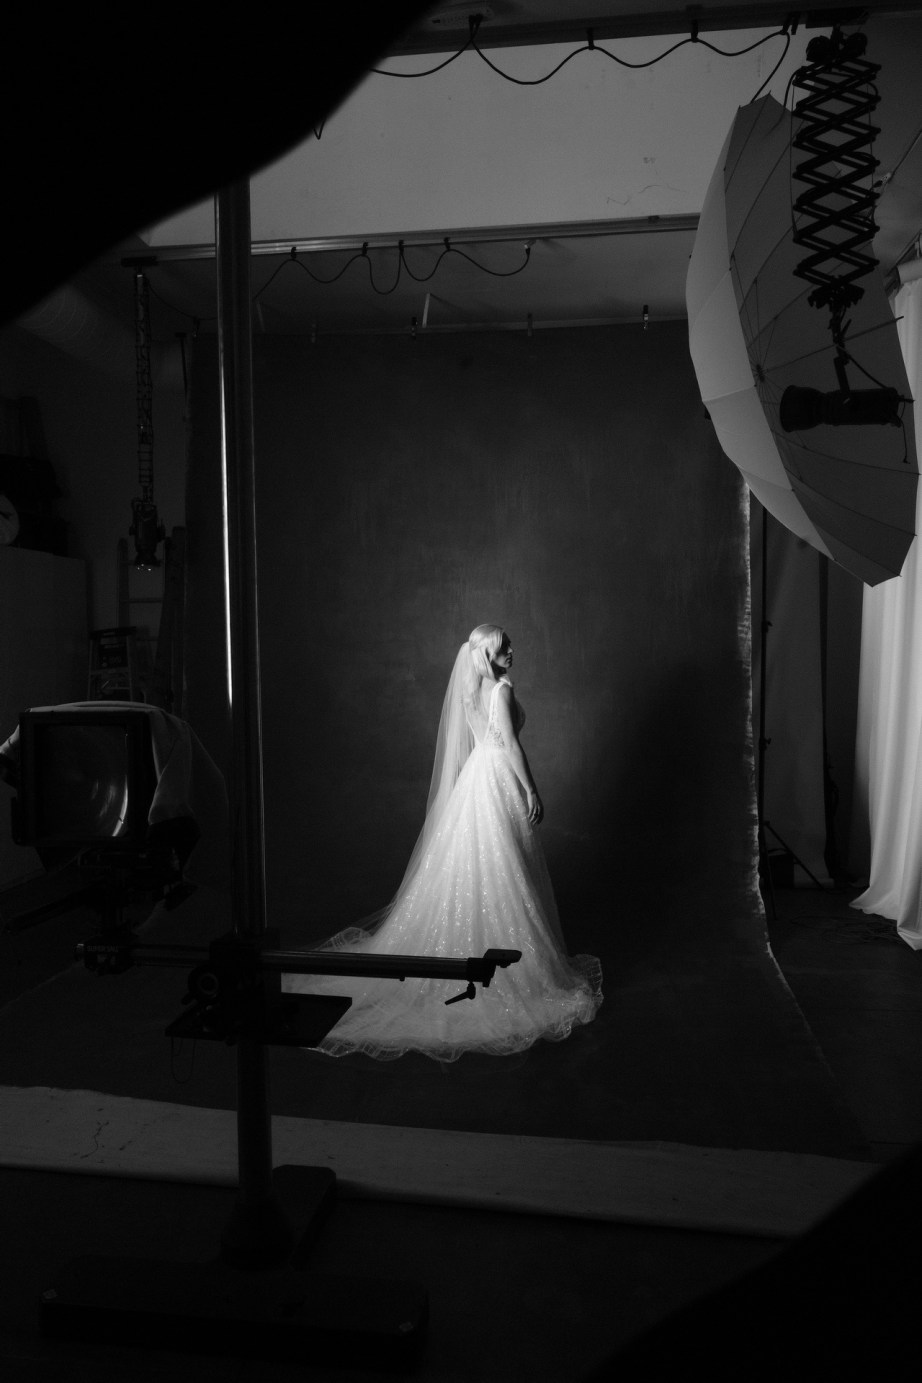 bridal_formal_studio_shoot_nicole_caldwell01.JPG